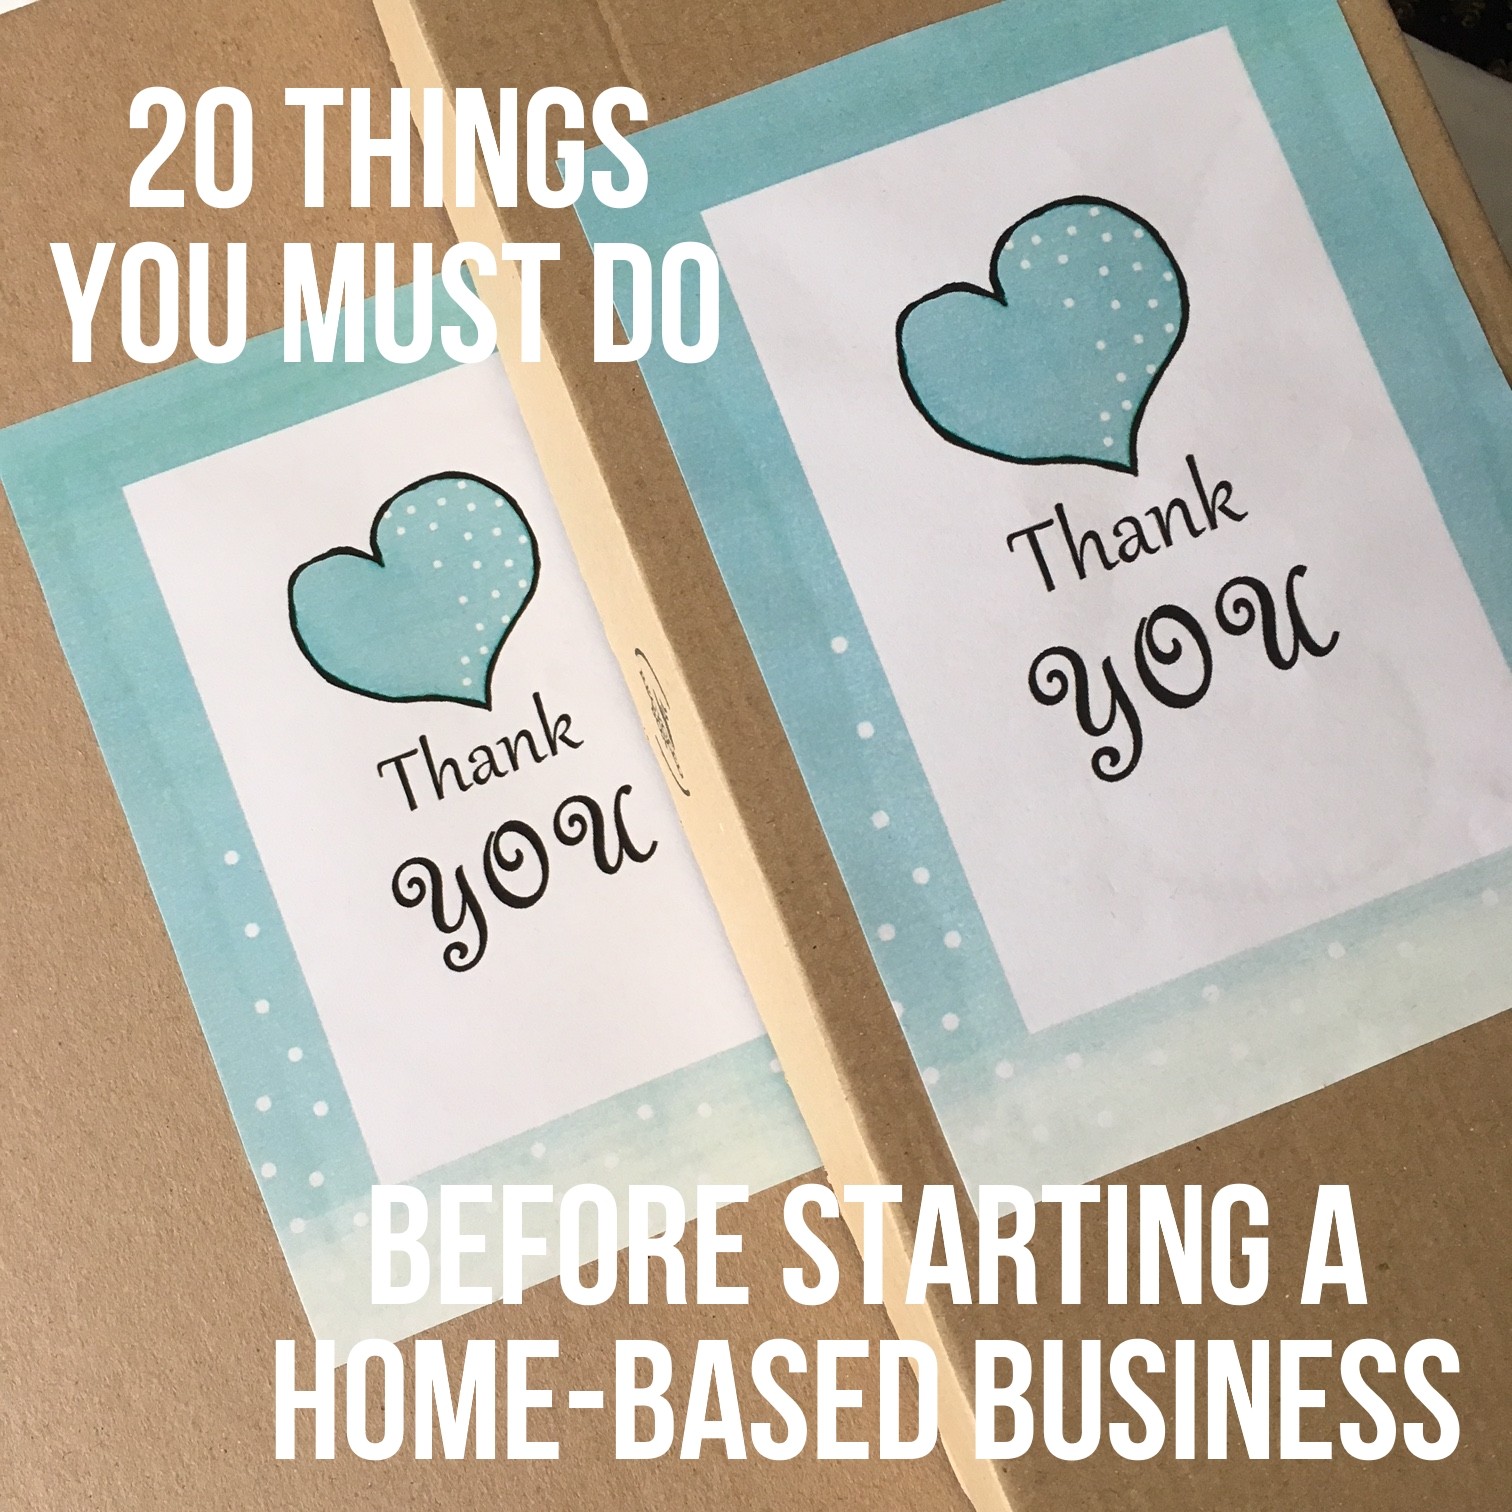 20 things you must do before starting a home-based business